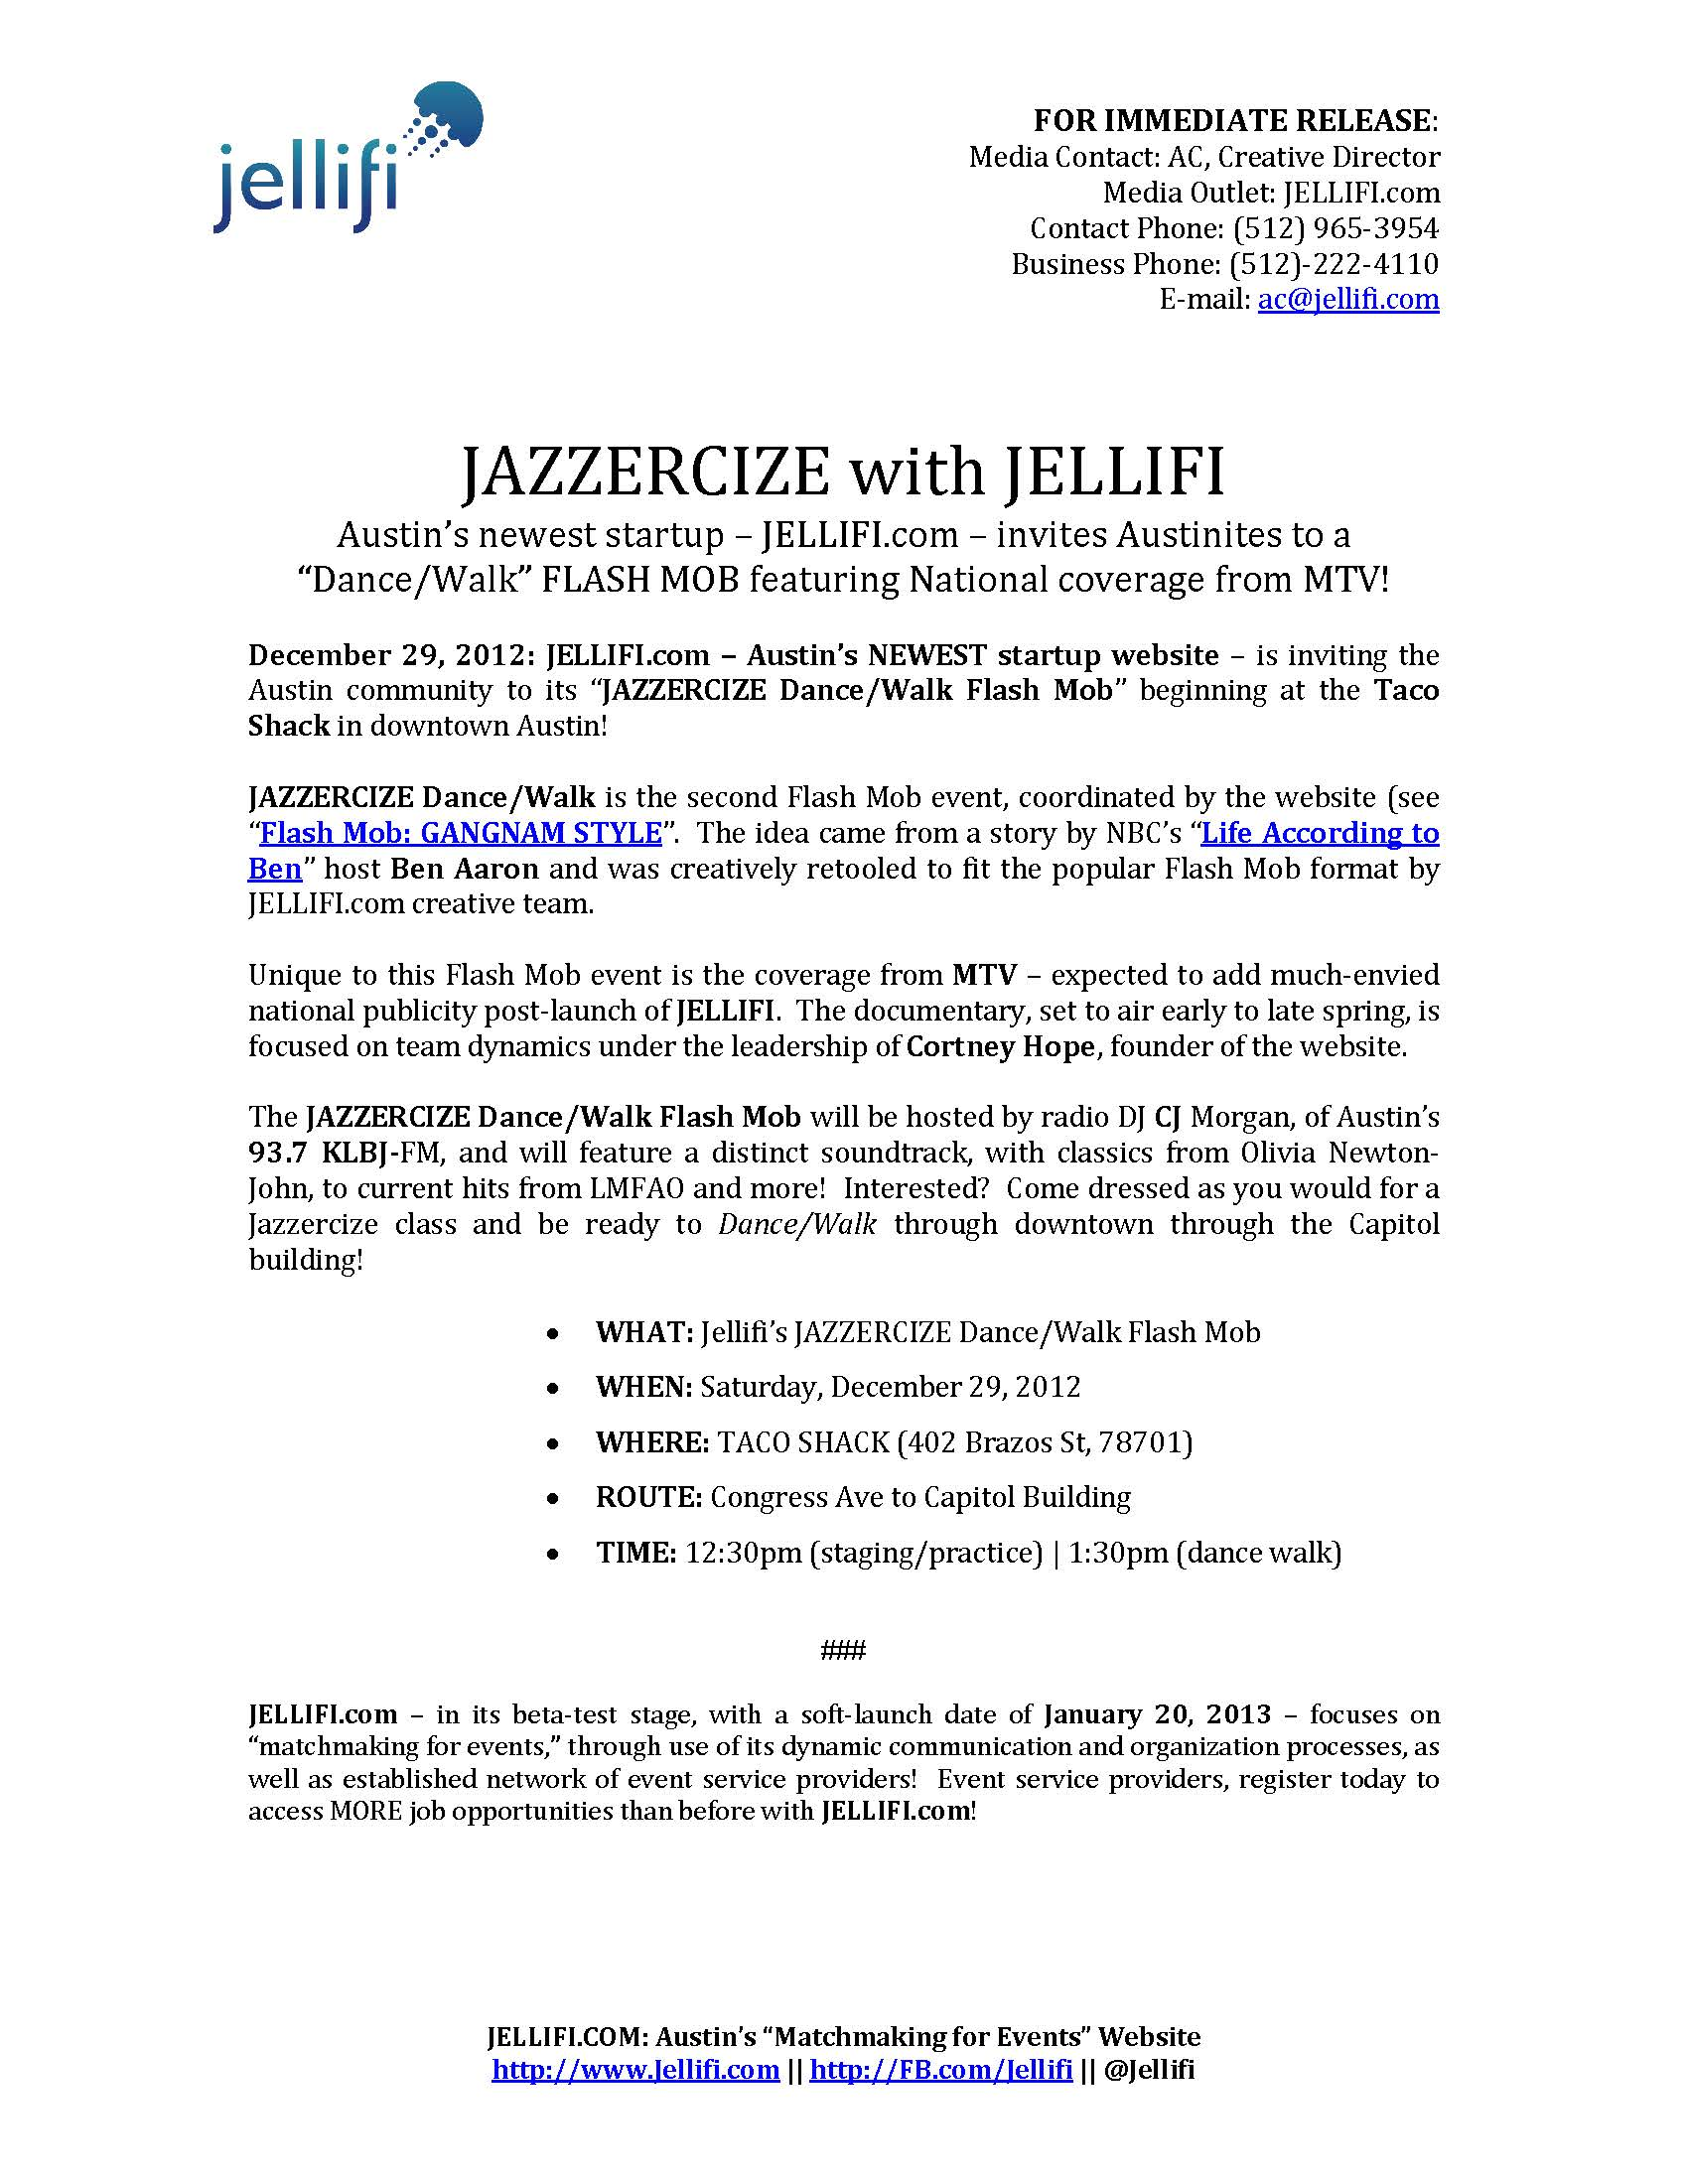 PRESS RELEASE_Jellifi_JAZZERCIZE Dance W